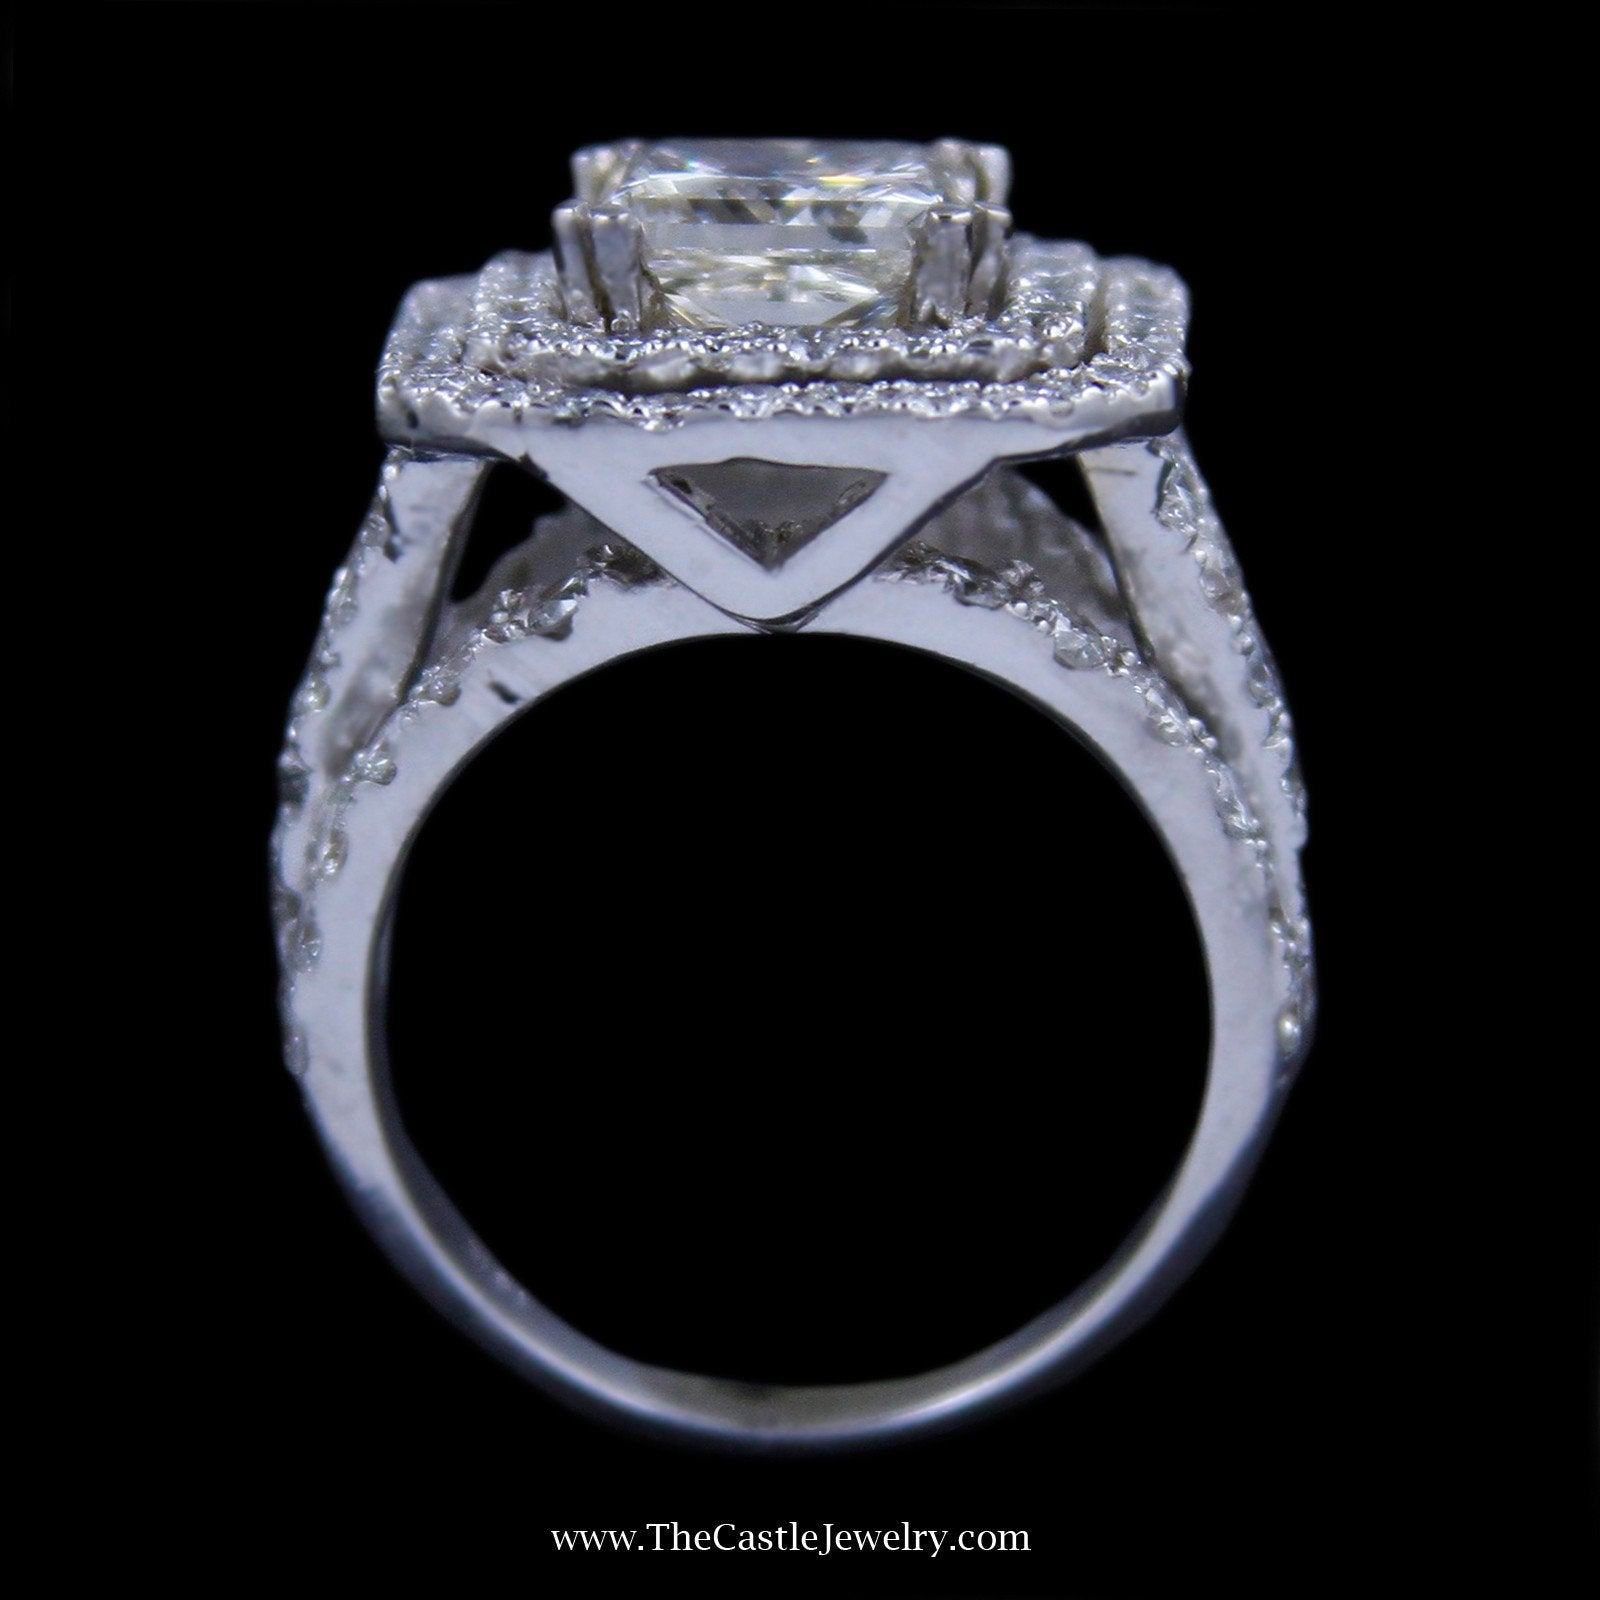 Princess Cut 2.98ct Diamond Engagement Ring w/ Double Round Diamond Bezel in 18k White Gold-1